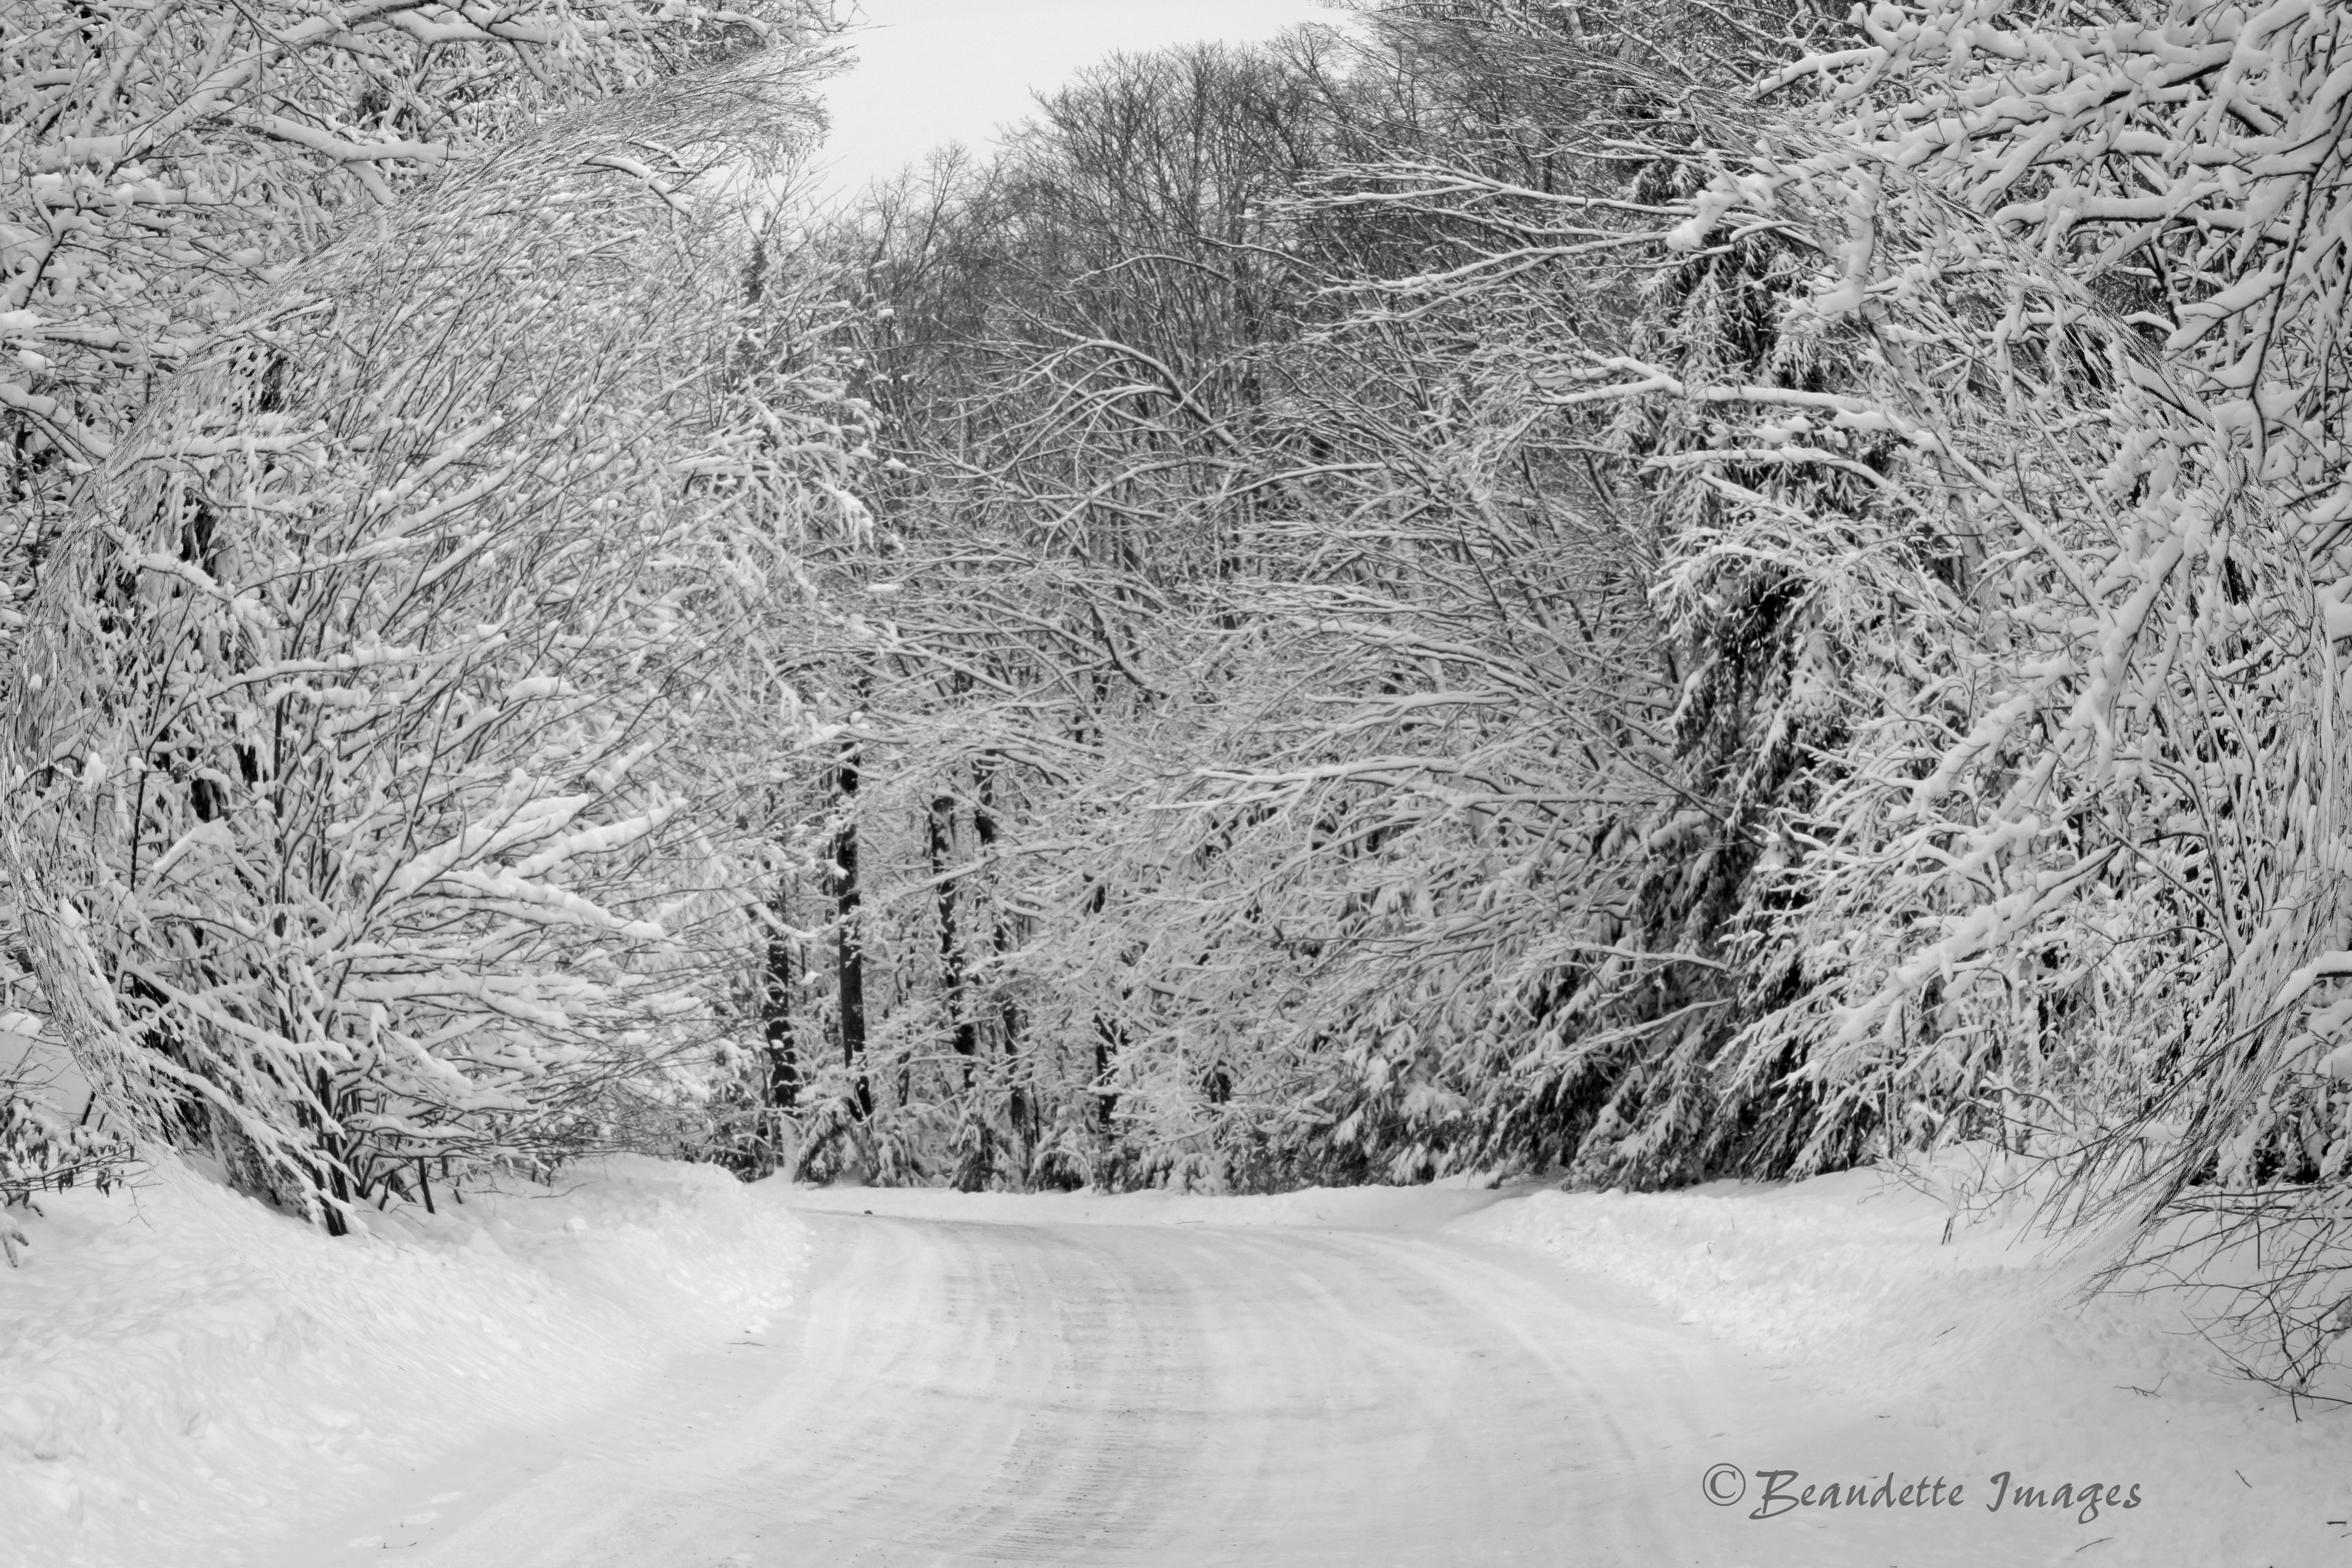 Snowy day on a country road.